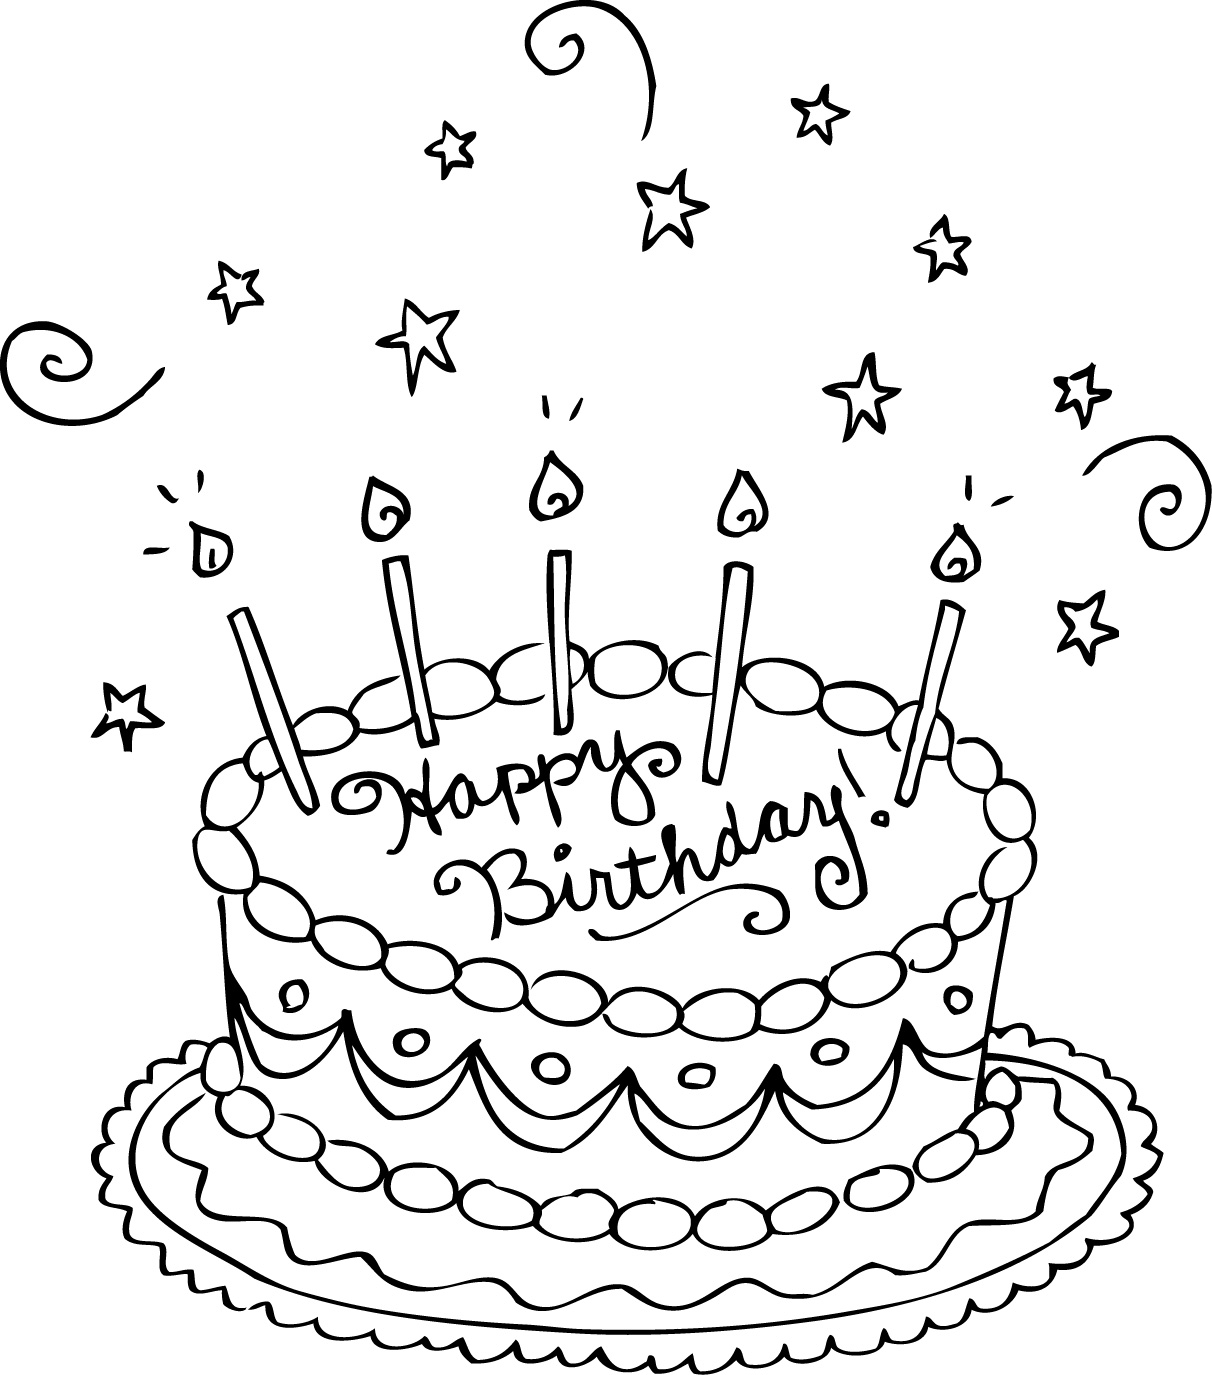 Colouring in birthday cake - Coloring Page Birthday Cake